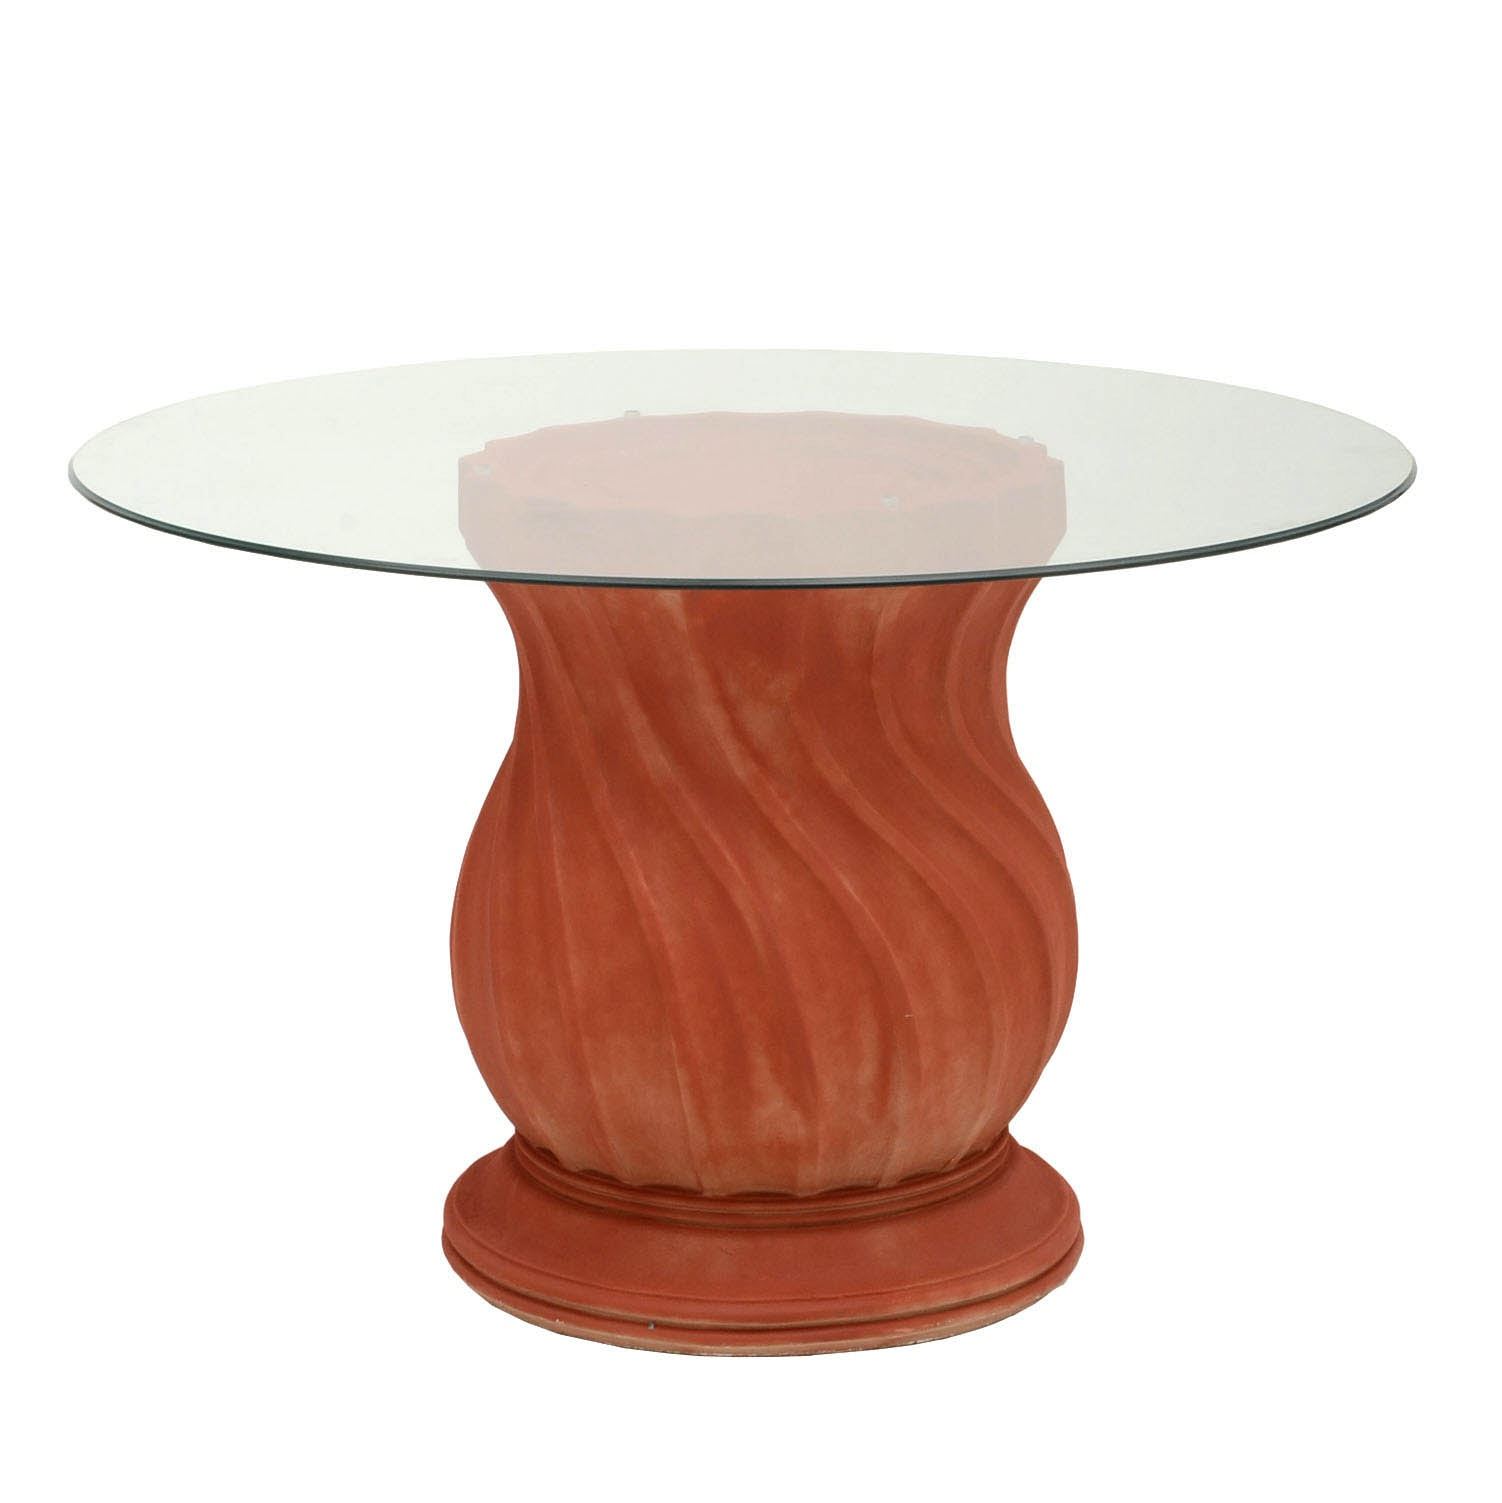 round glass top dining table for 4 images